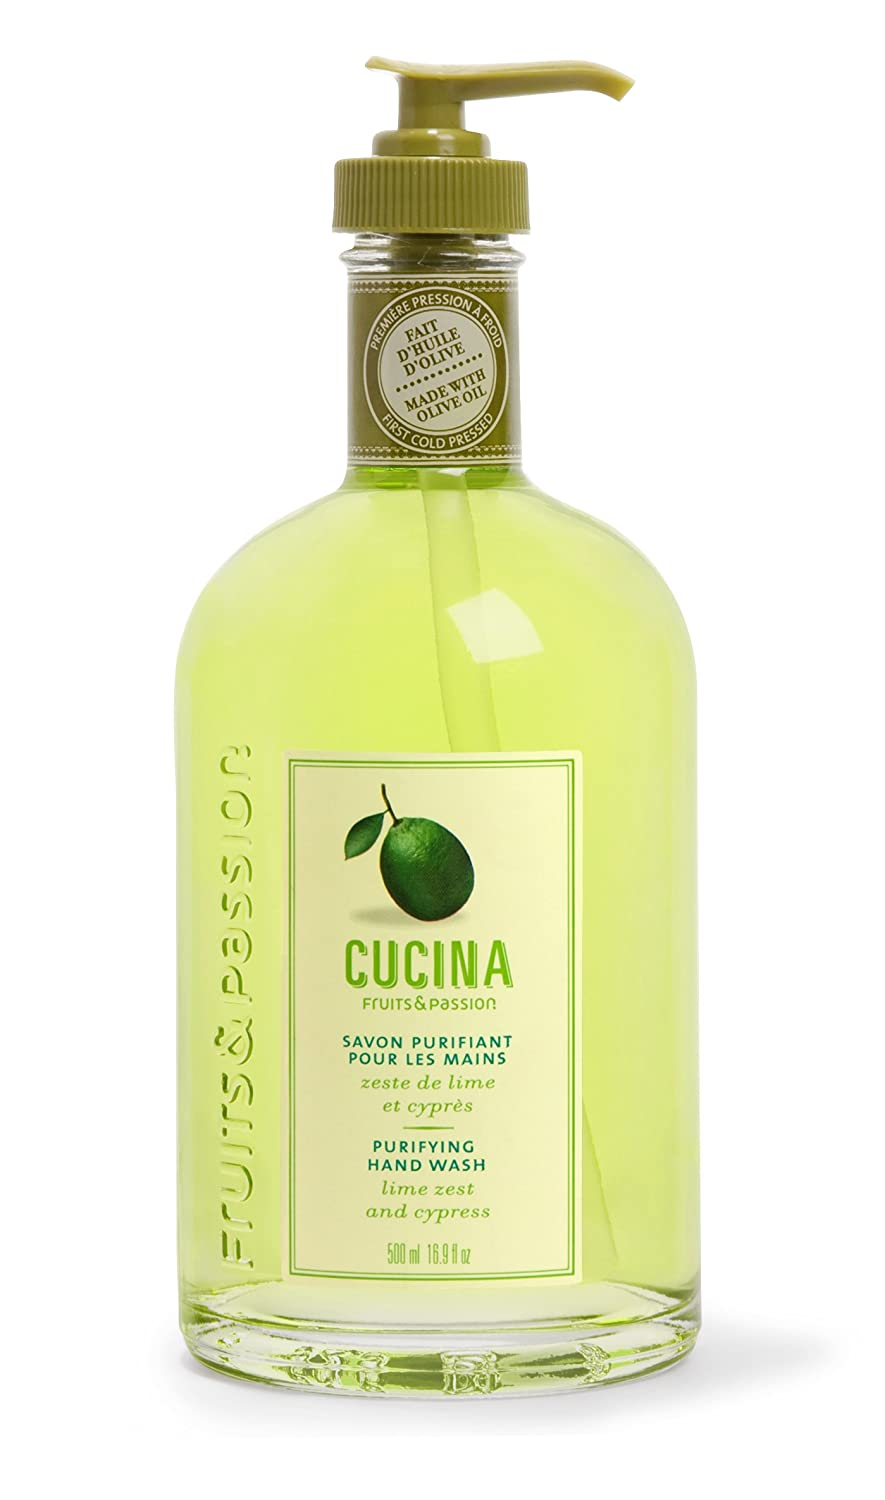 Cucina Regenerating Hand Wash